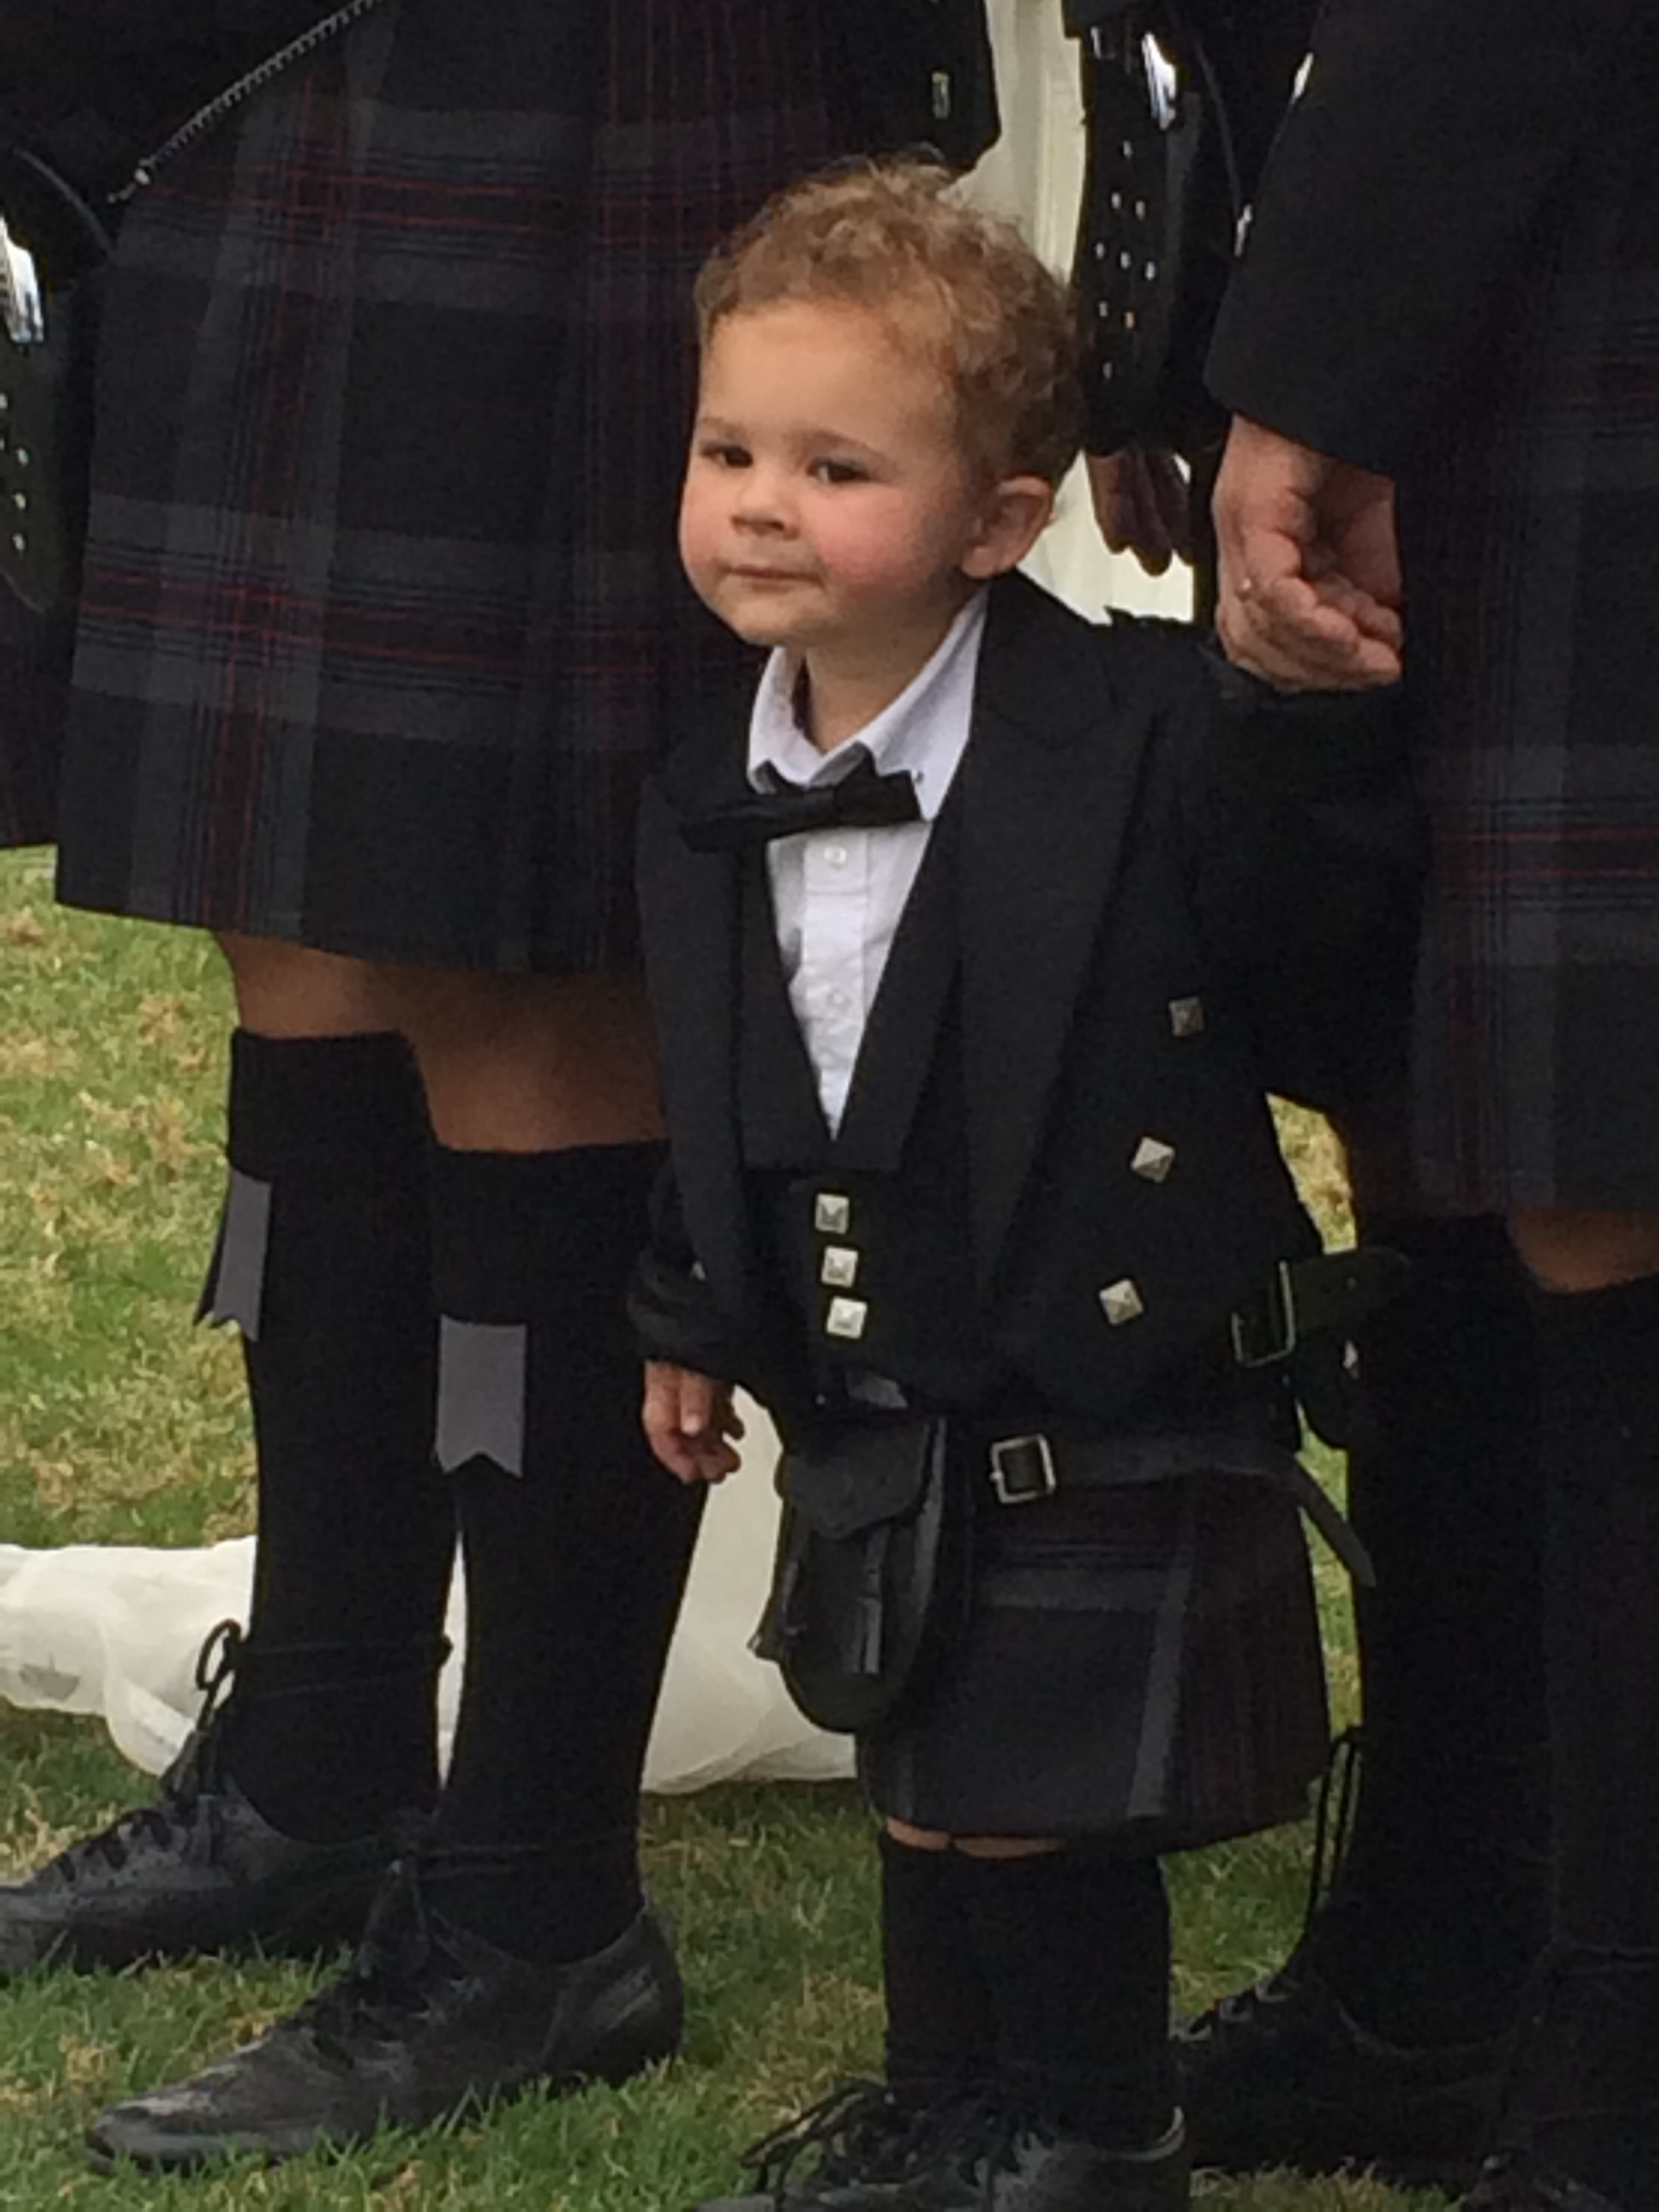 Morelli-Wedding-Child-Kilt